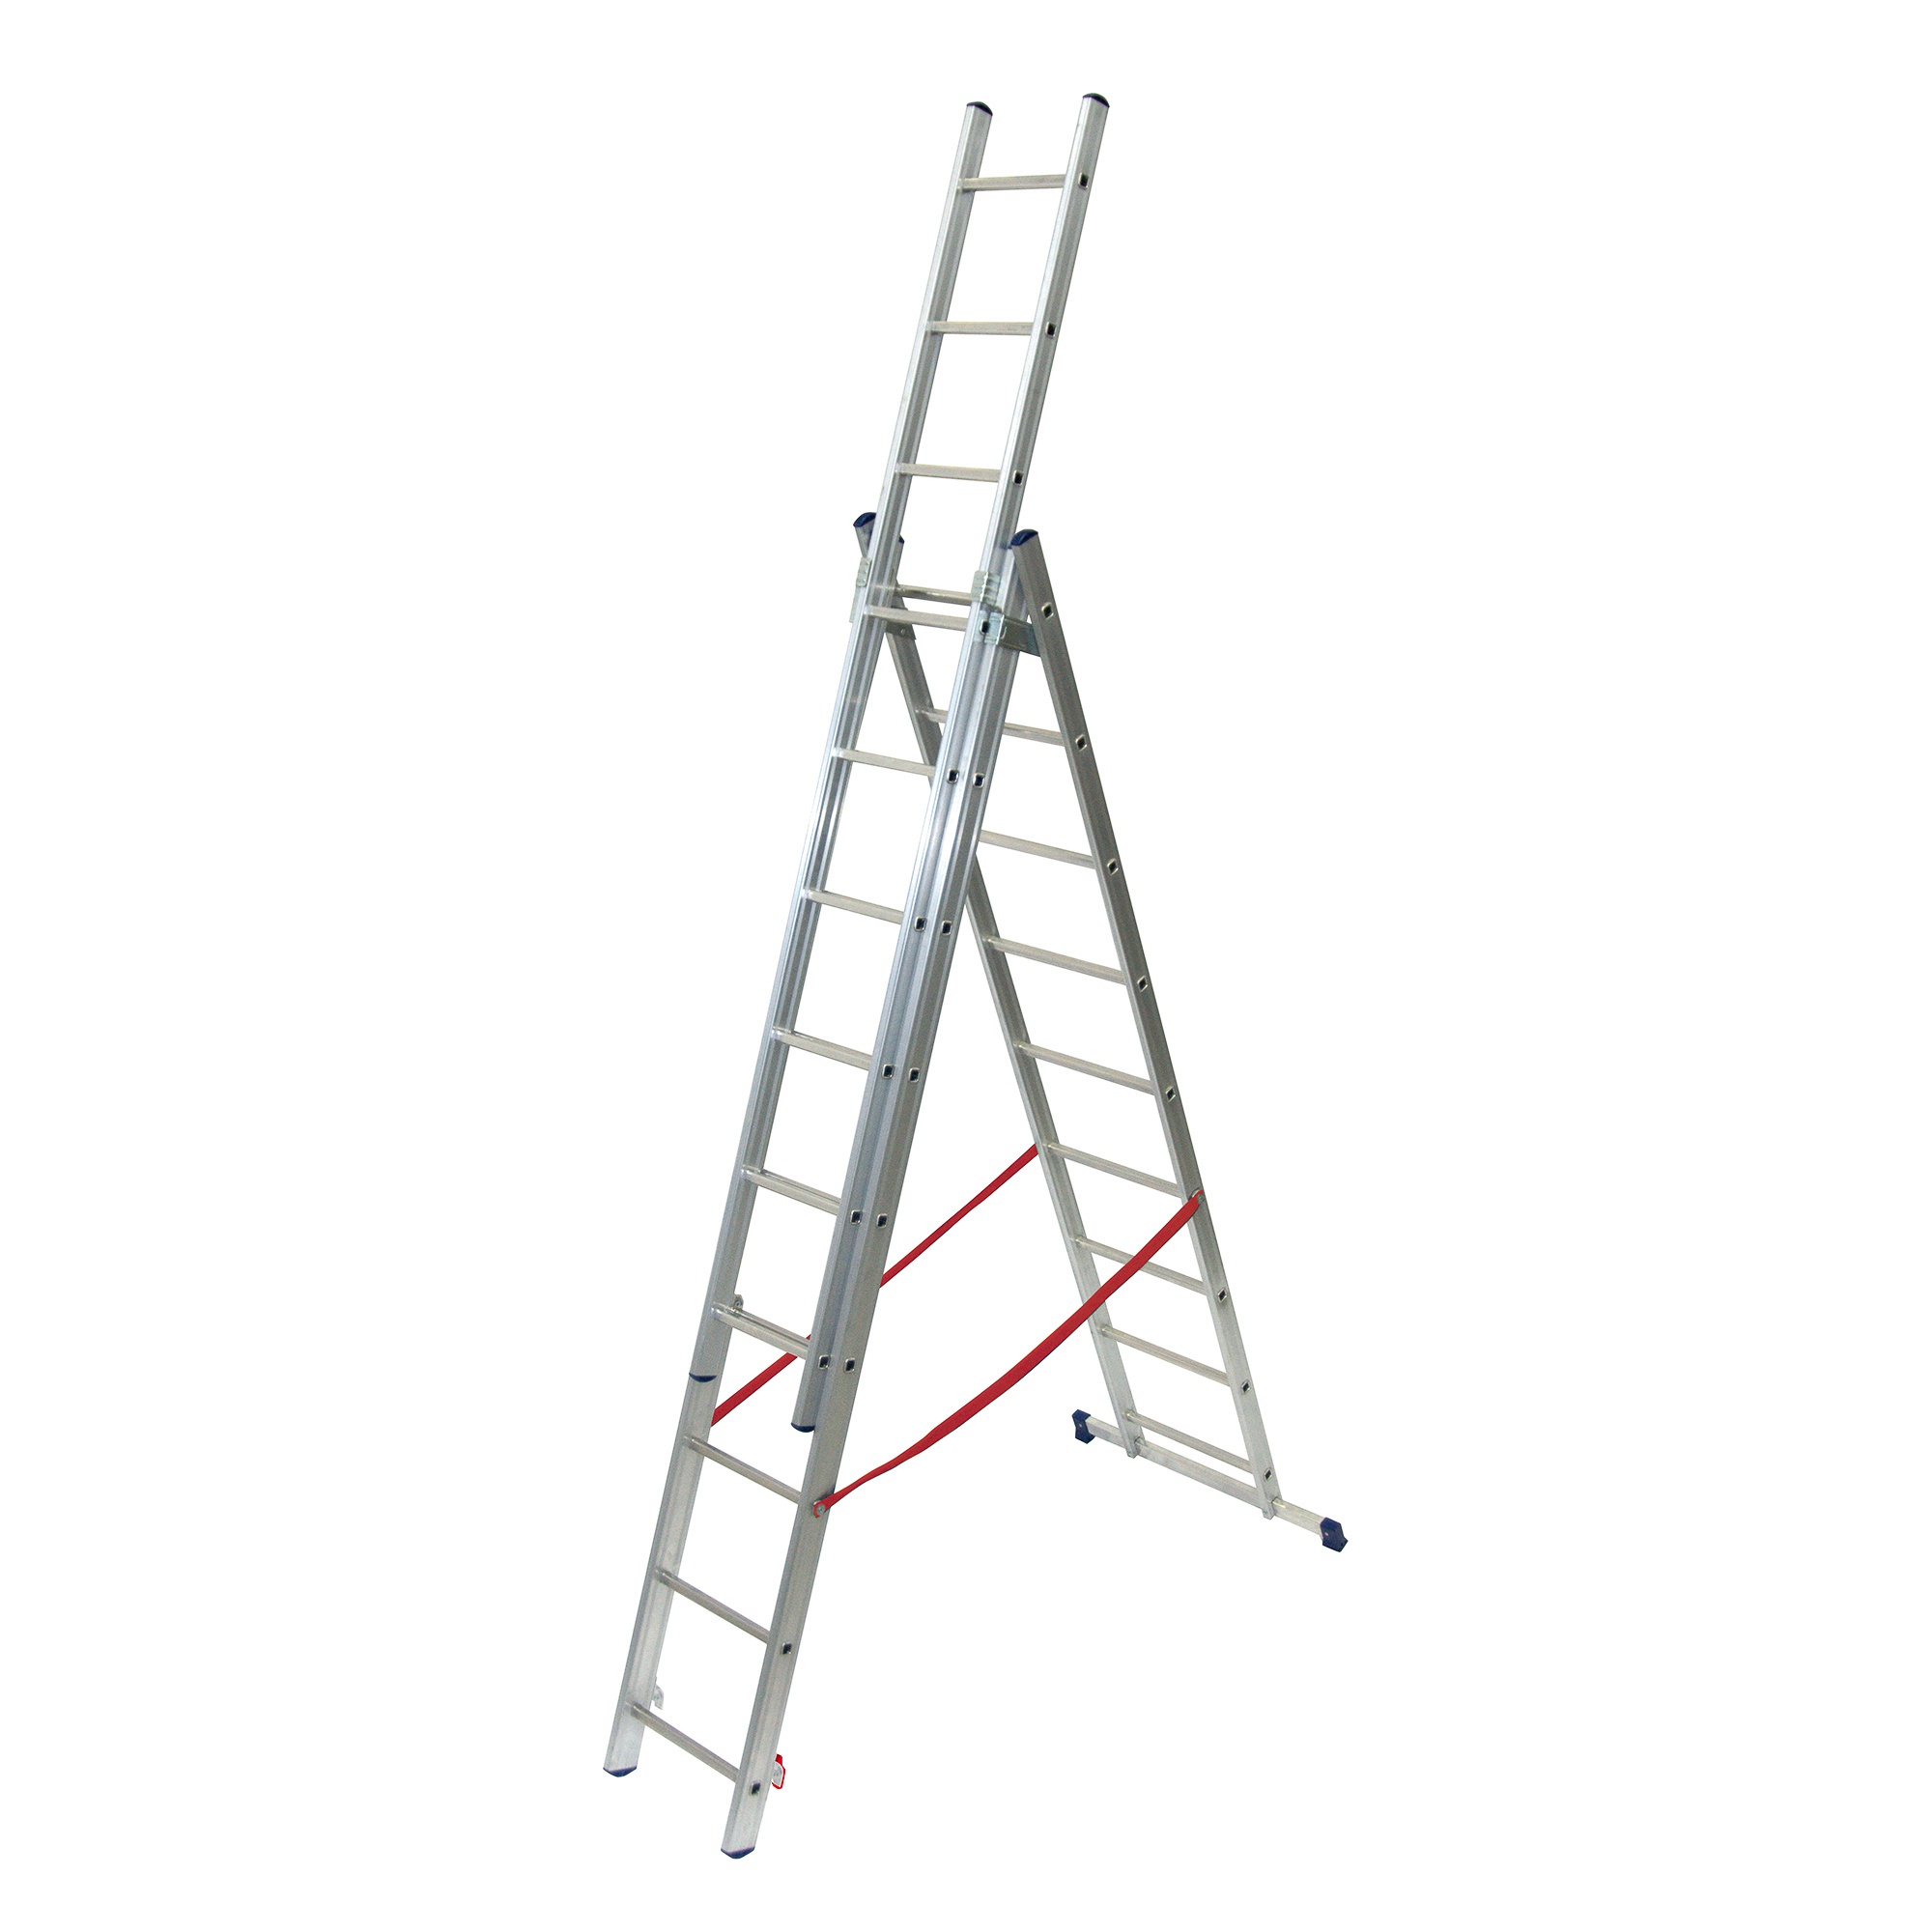 light duty 4 way combi ladder en131 extension ladder a frame step stairs ebay. Black Bedroom Furniture Sets. Home Design Ideas